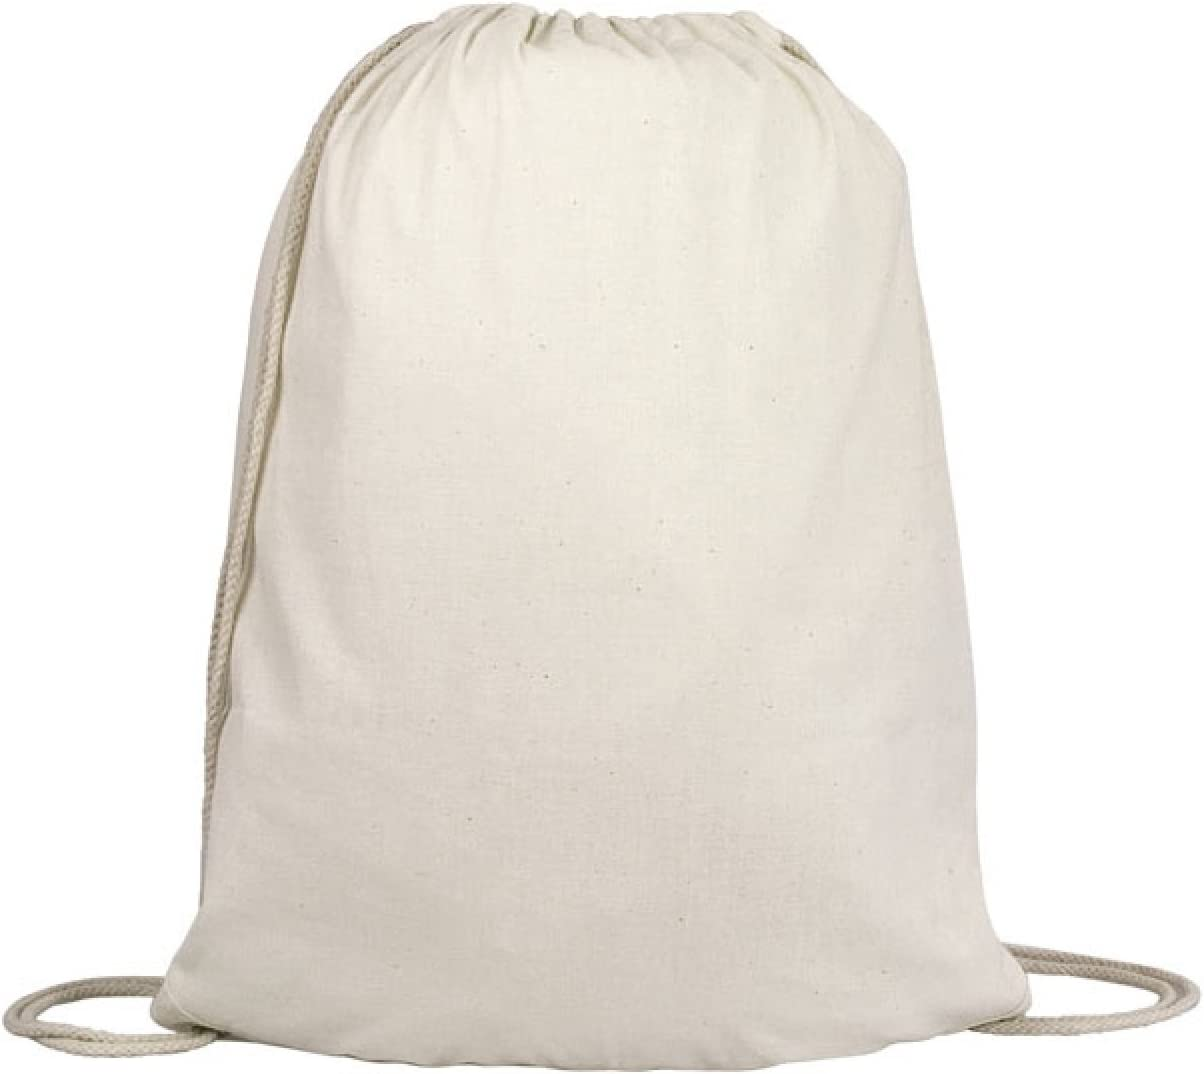 Georgiabags Washable Drawstring Bags,Sport Drawstring Backpack/%100 Cotton Bags for Sport,Gym